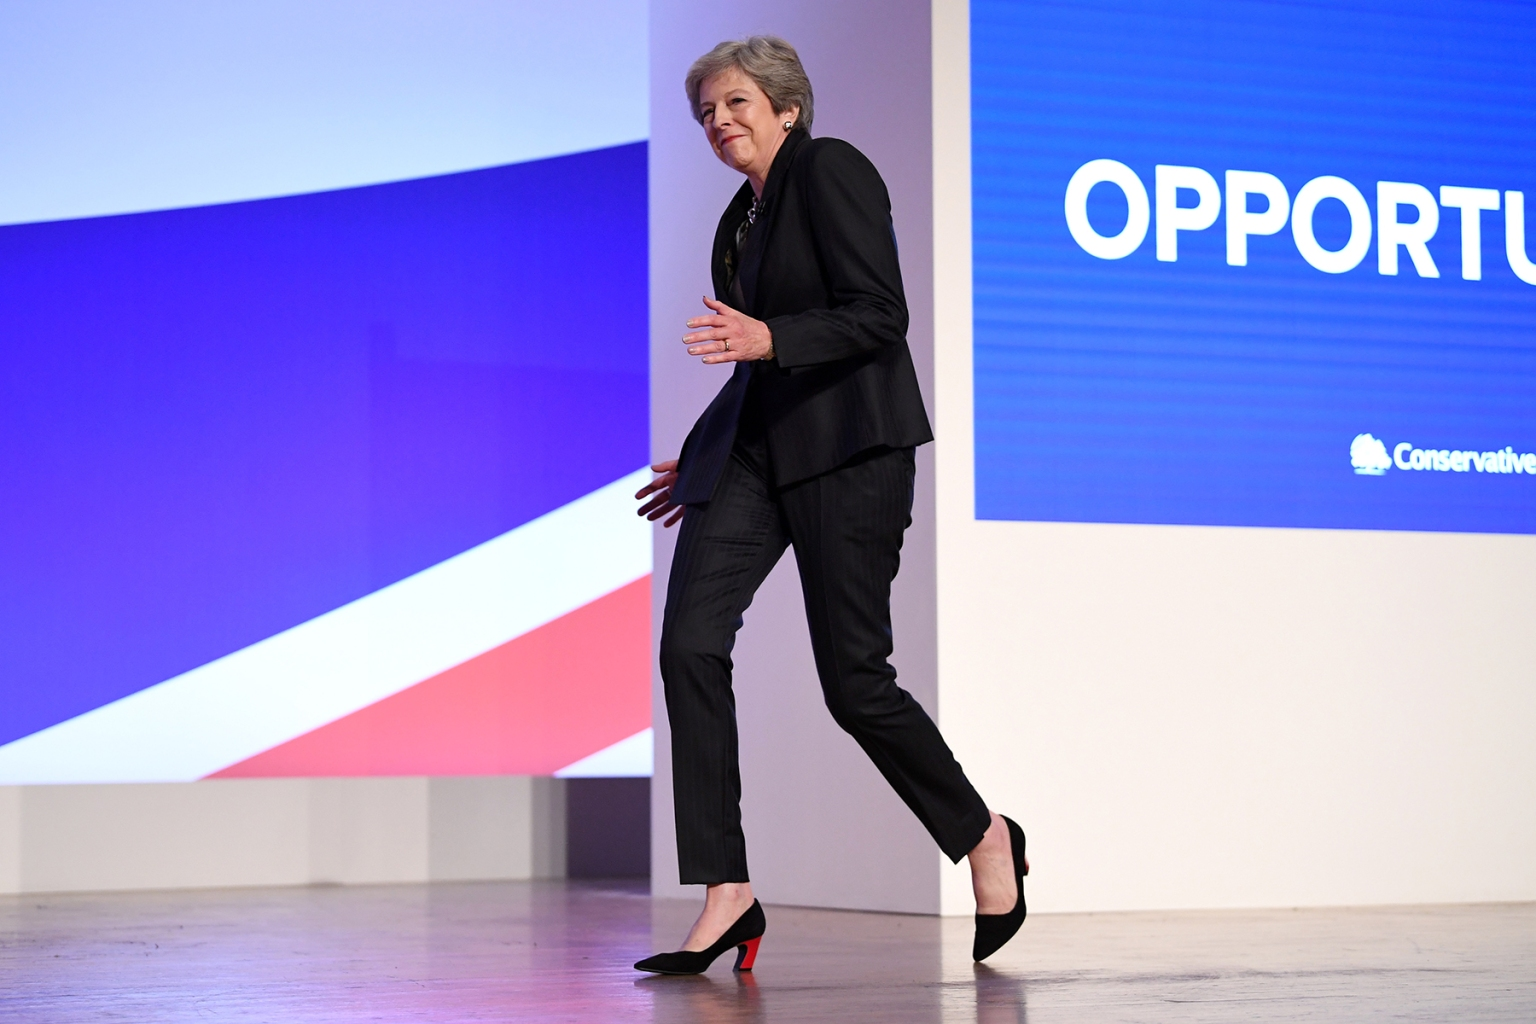 British Prime Minister Theresa May dances as she walks out onto the stage to deliver her leader's speech during the final day of the Conservative Party Conference in Birmingham, England, on Oct. 3. Jeff J Mitchell/Getty Images